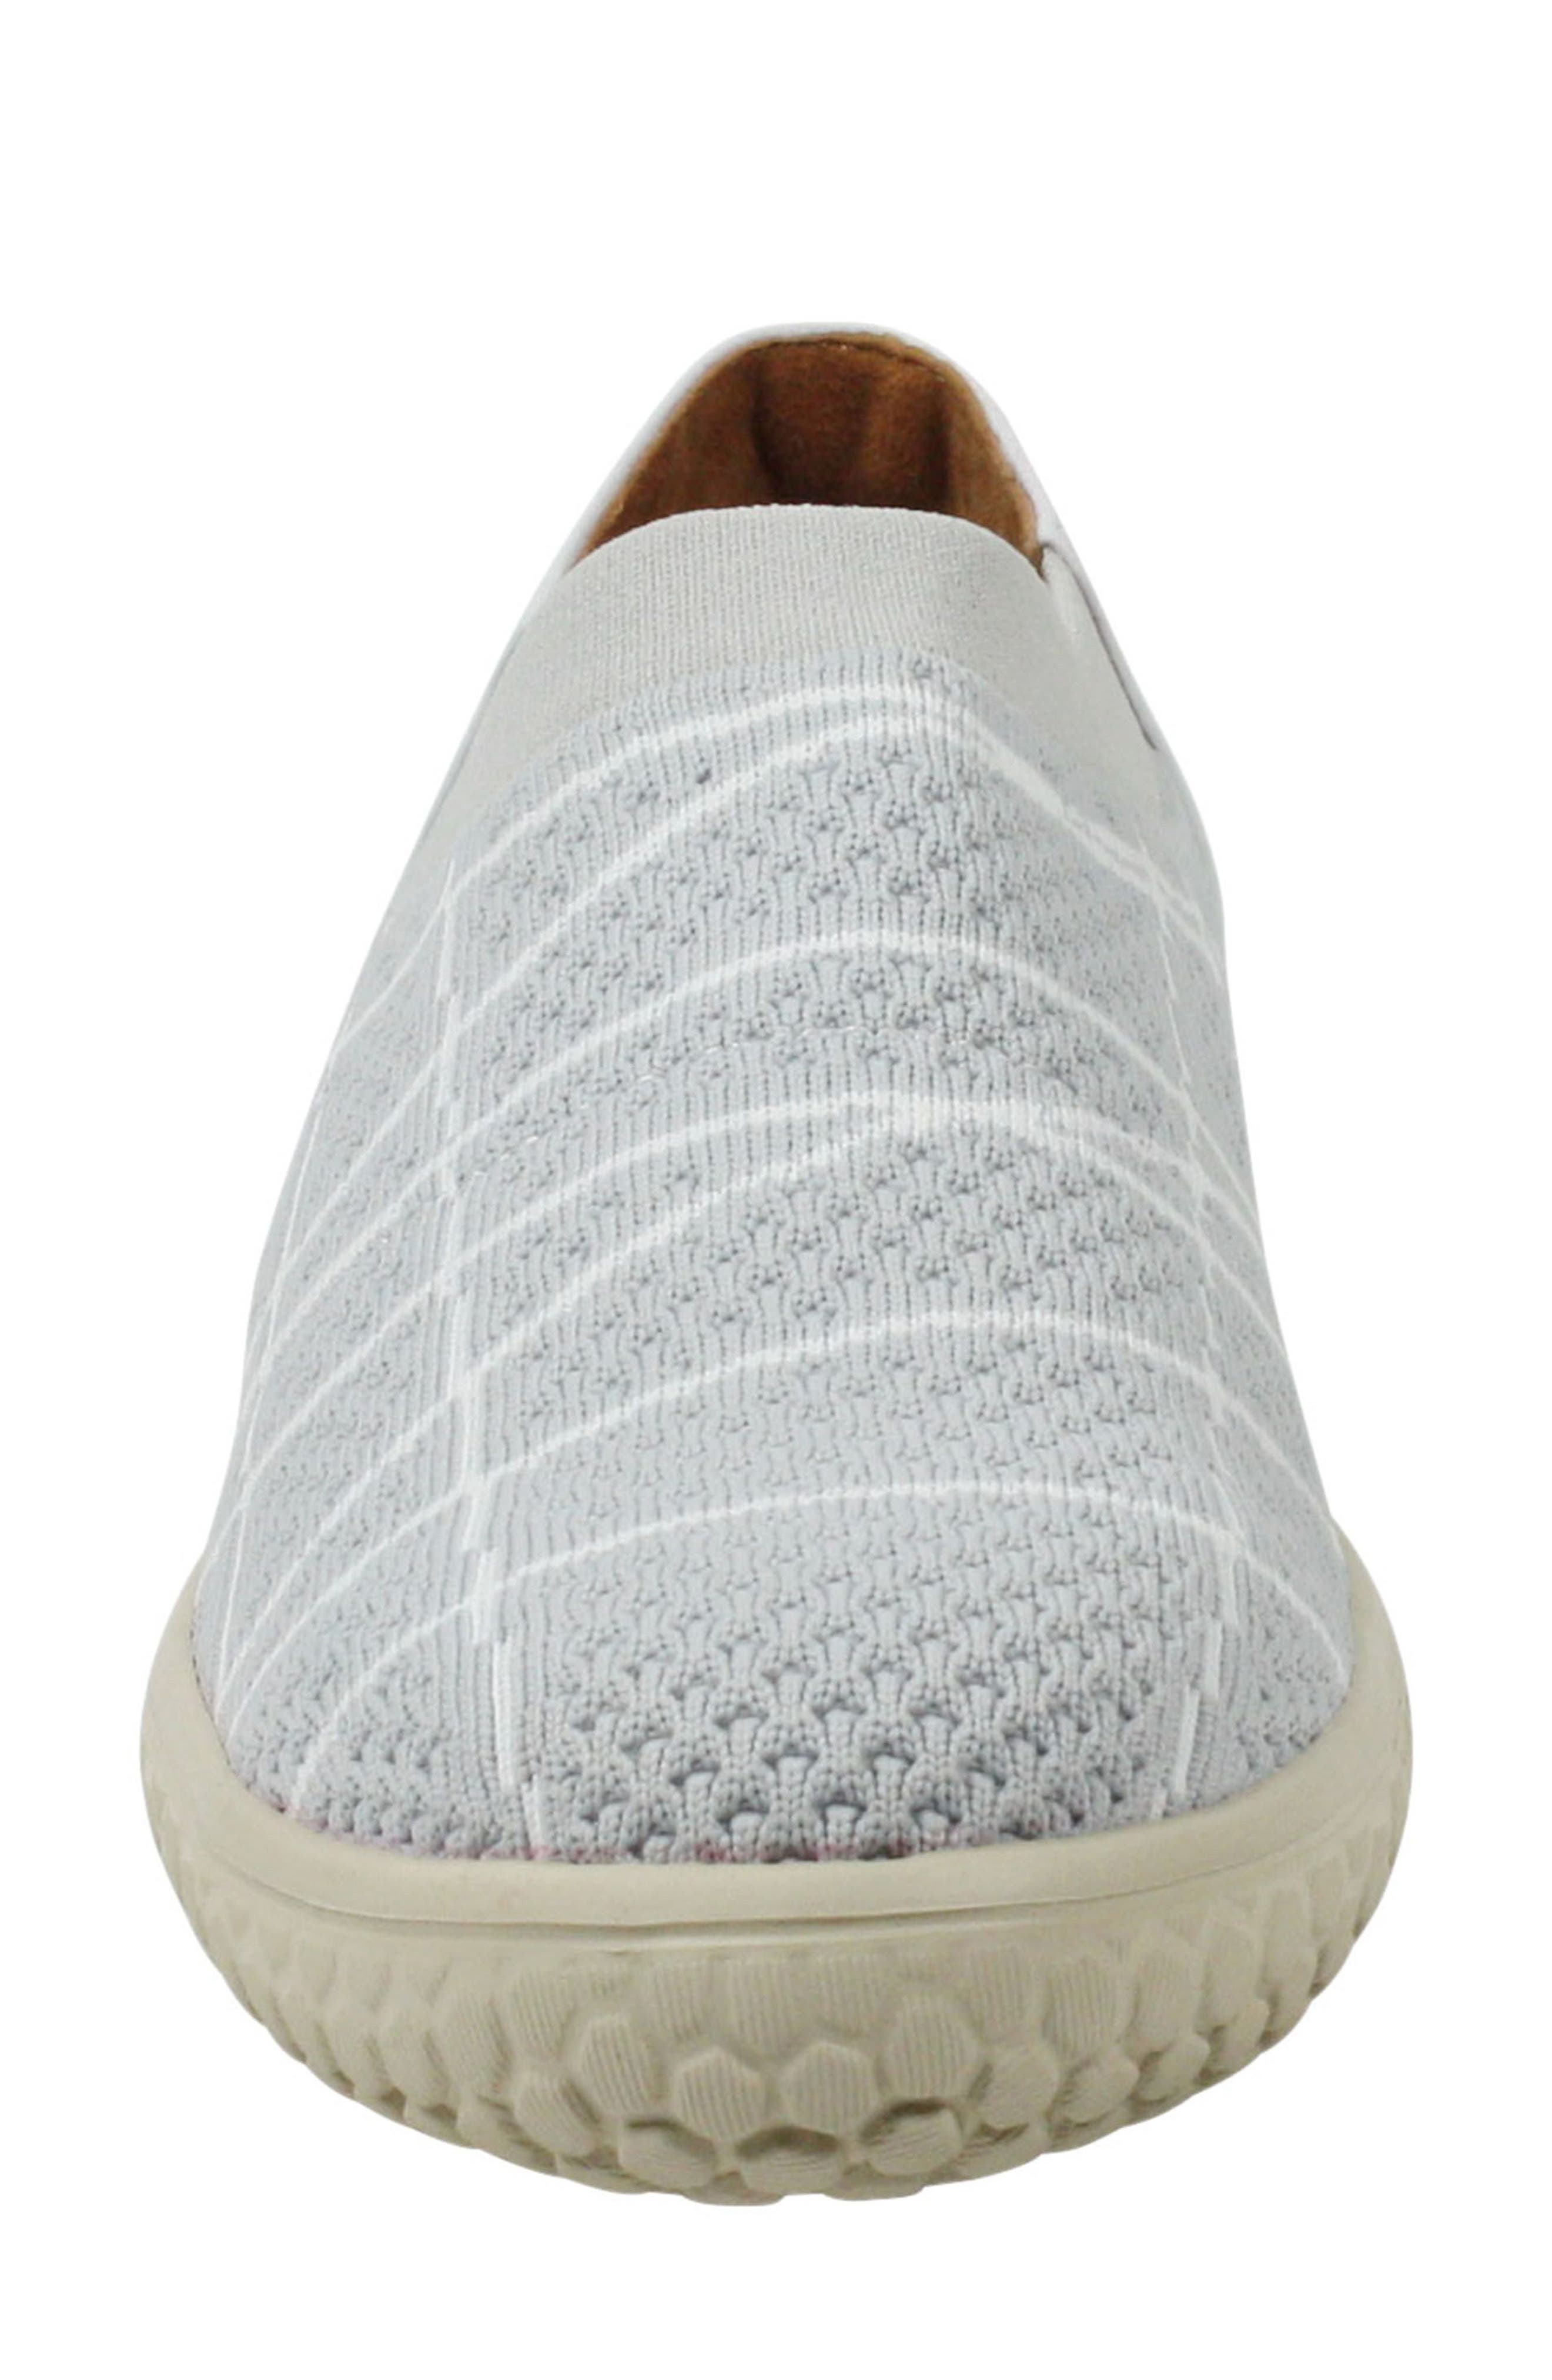 Zohndra Slip-On Sneaker,                             Alternate thumbnail 4, color,                             BEIGE FABRIC